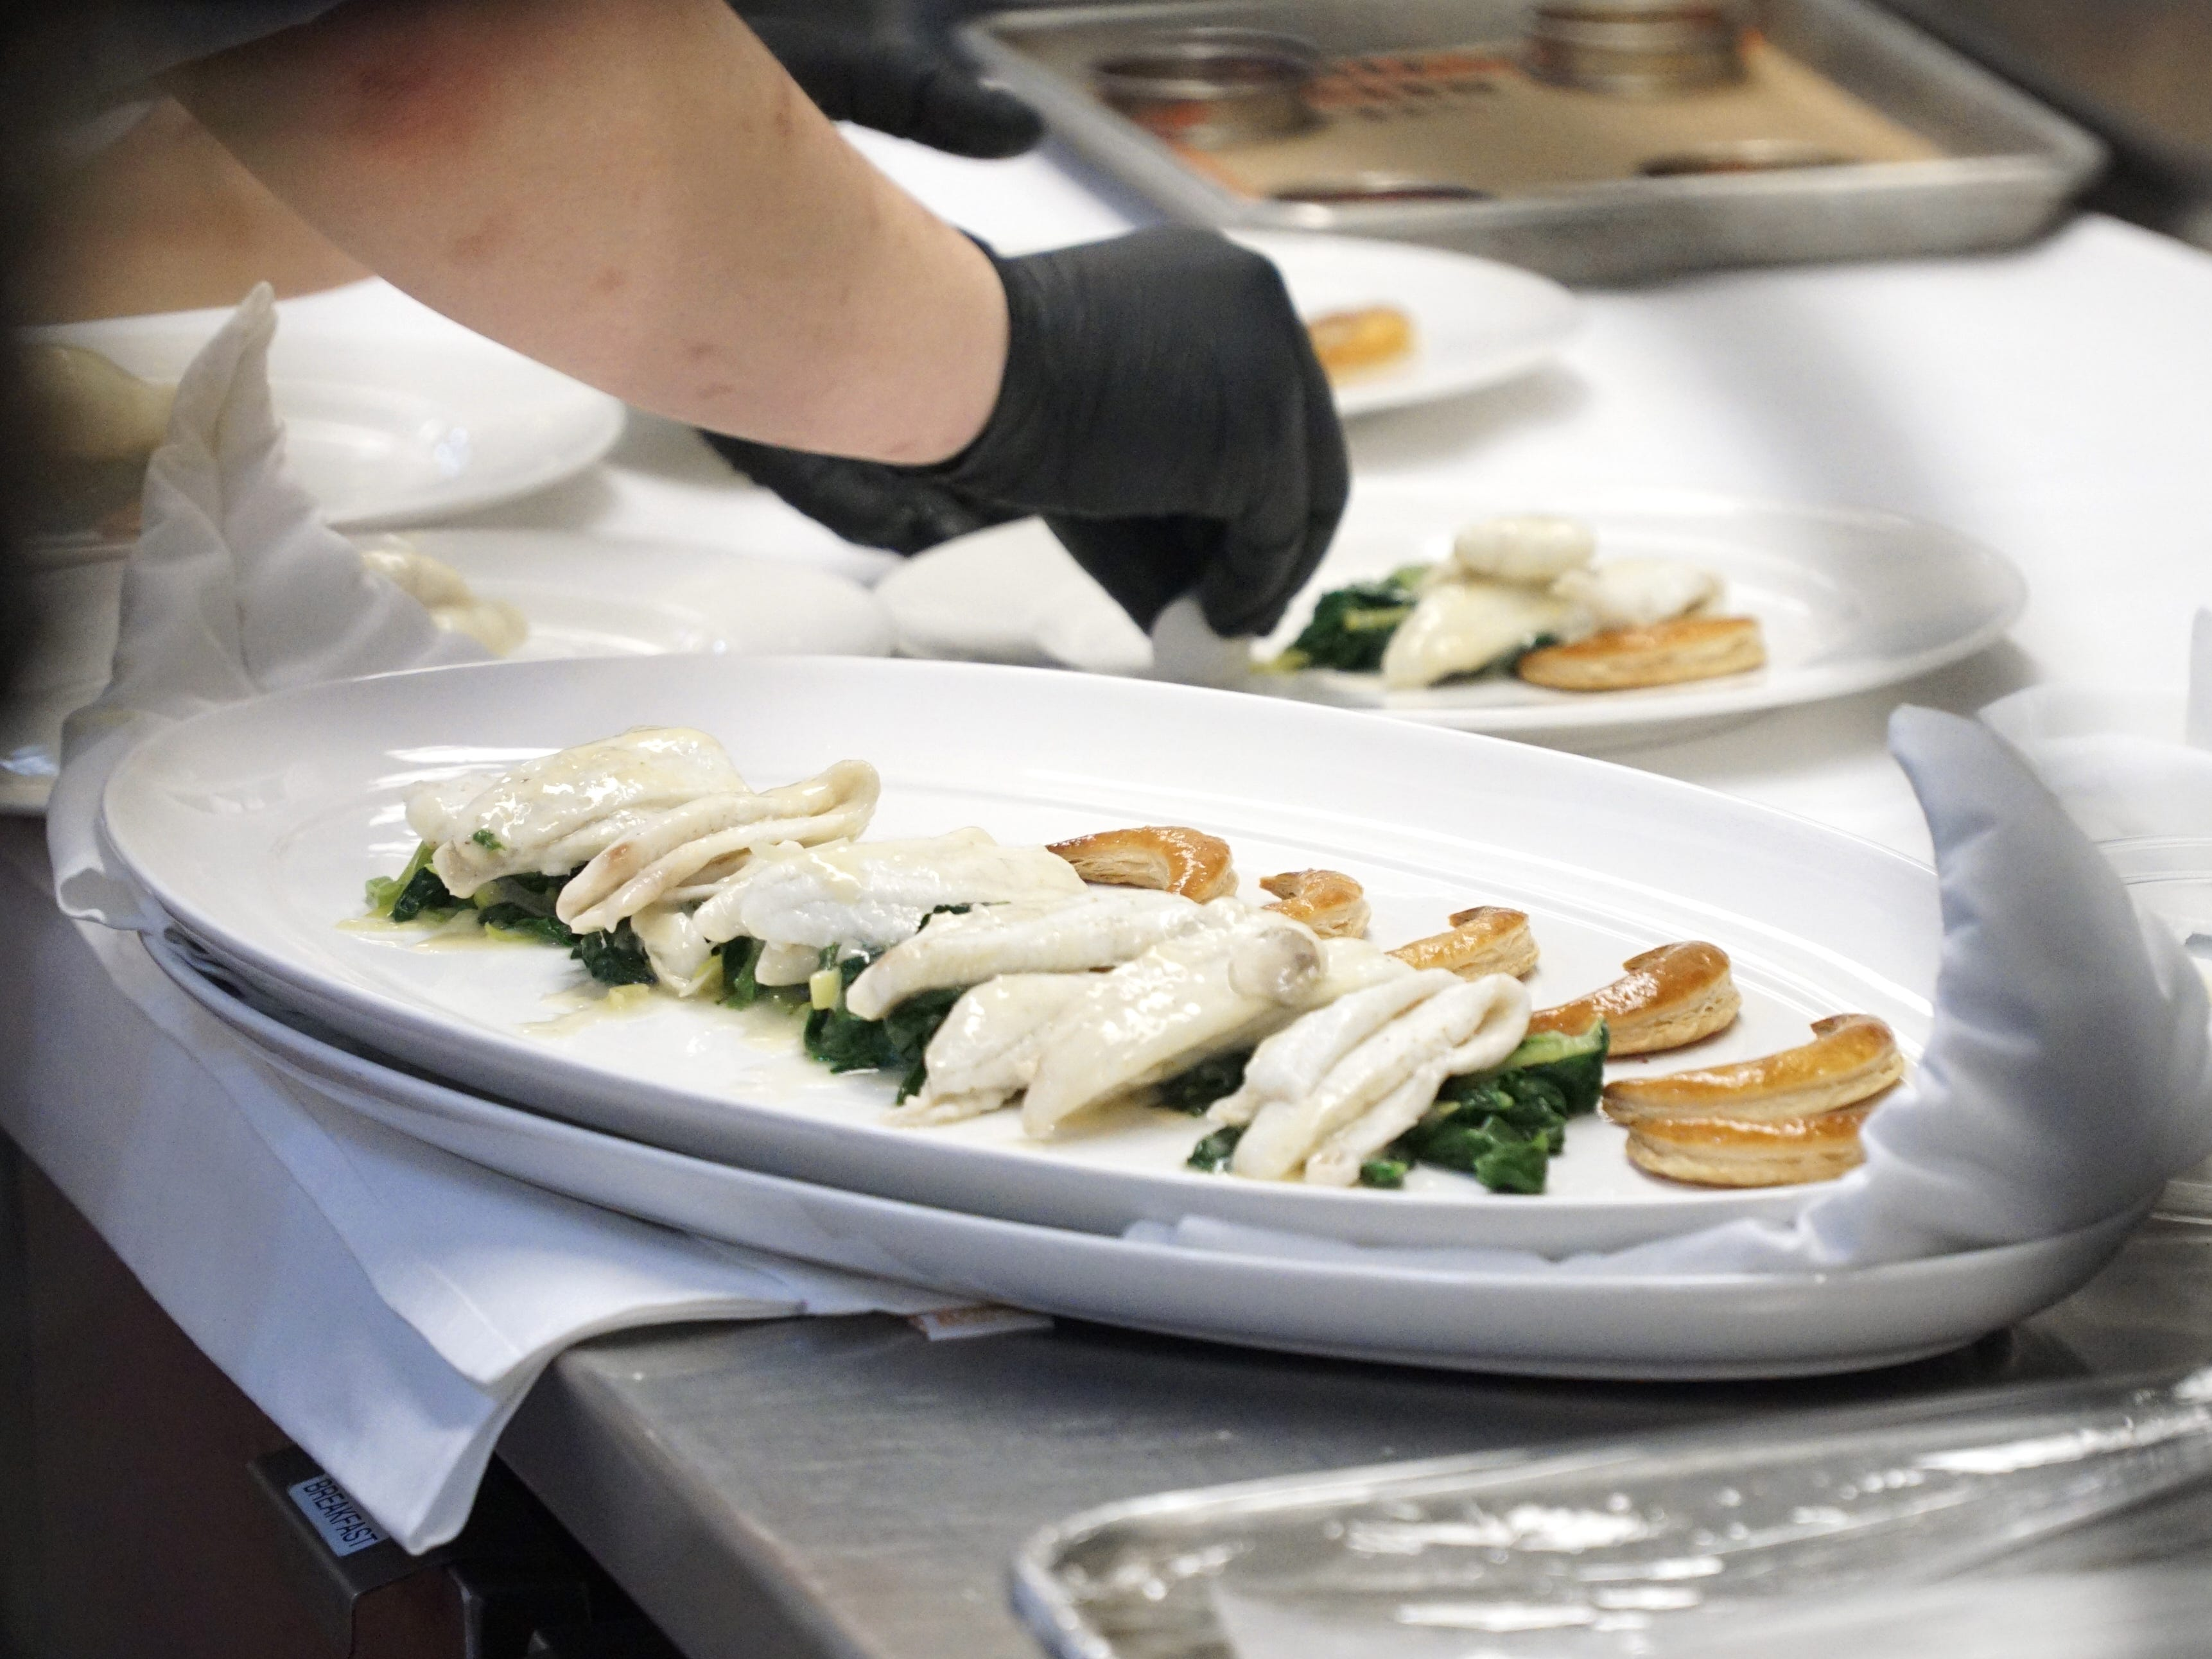 Bucci's filet of sole is plated and readied to be sampled by the other chefs.